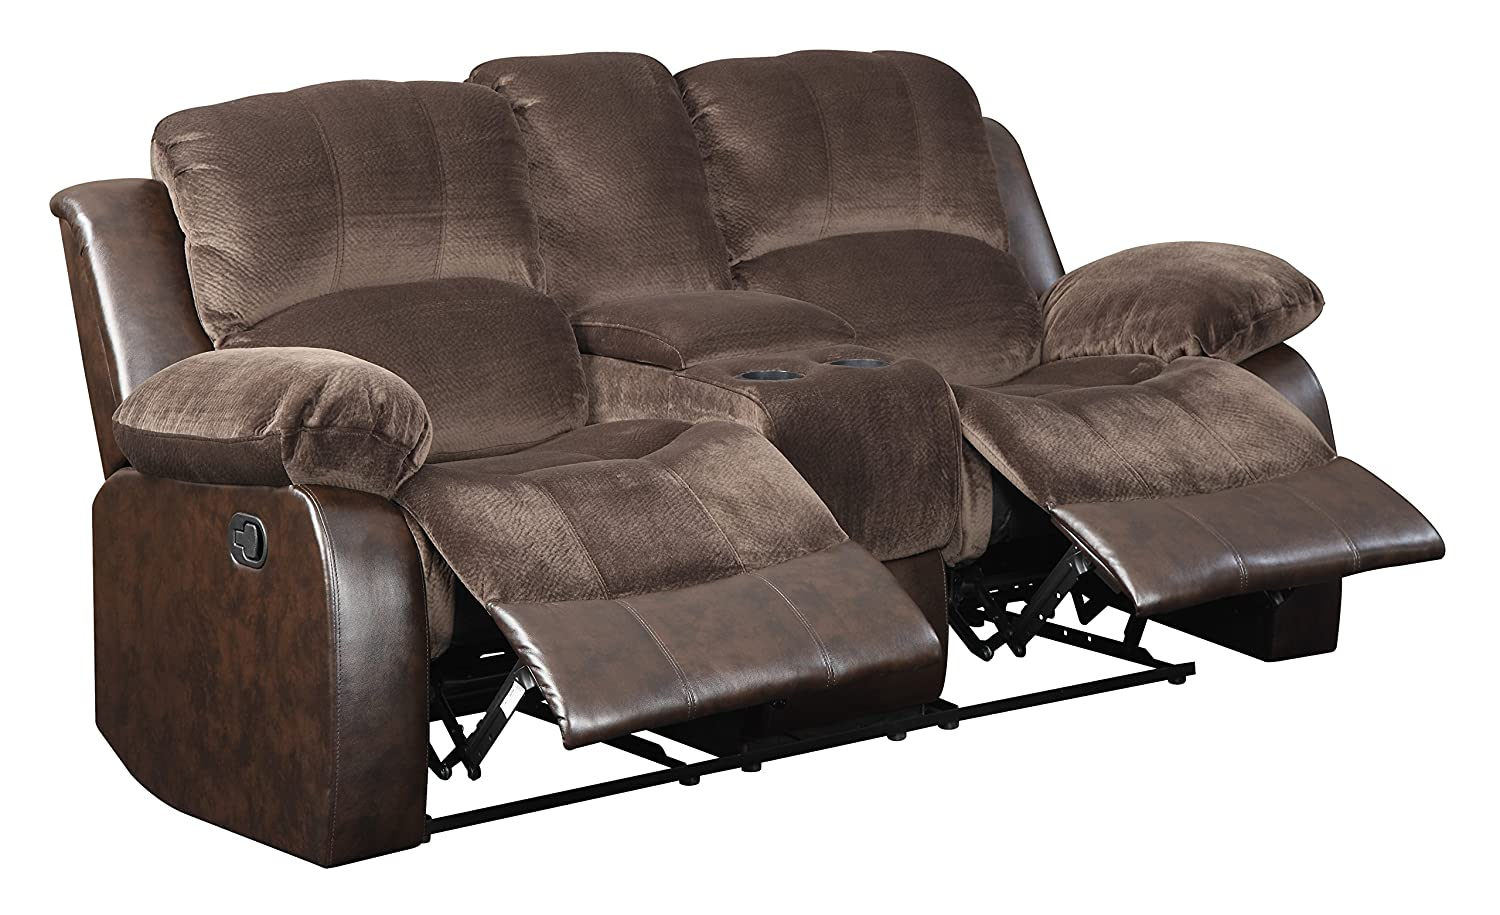 Glory Furniture G875-RL Reclining Loveseat with Console - Brown